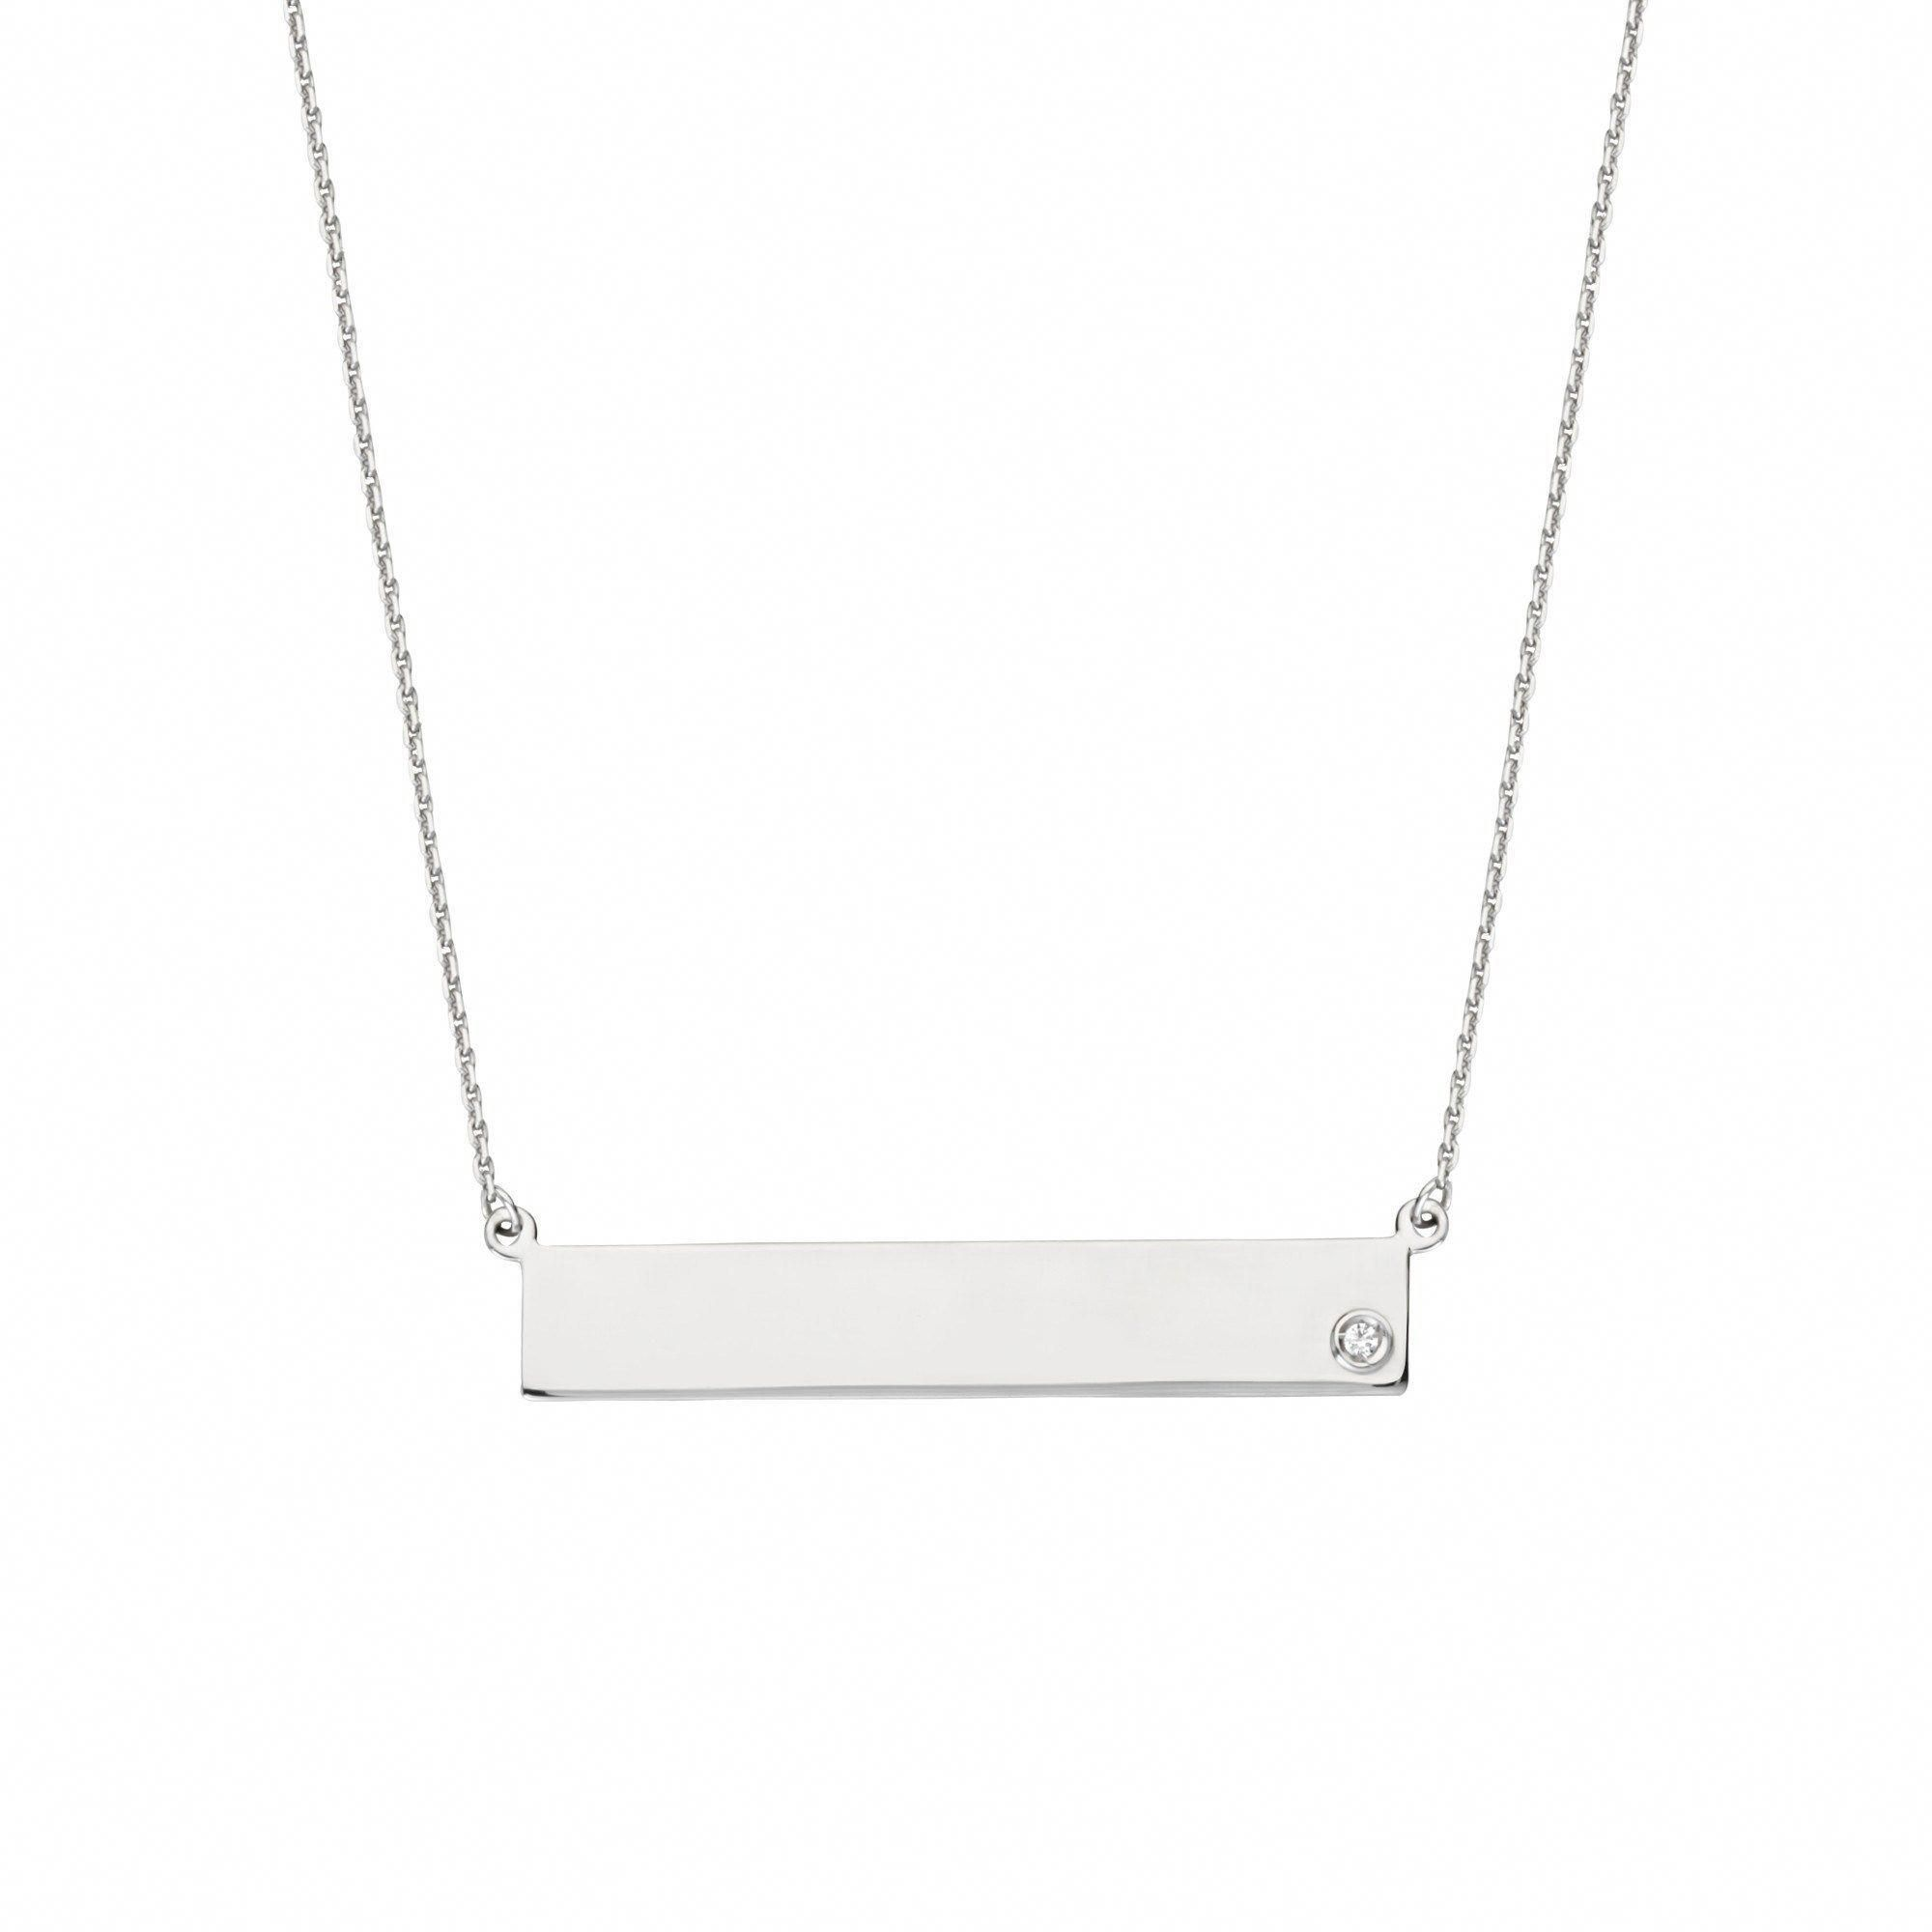 Sterling silver nameplate necklace with bezel set cz this